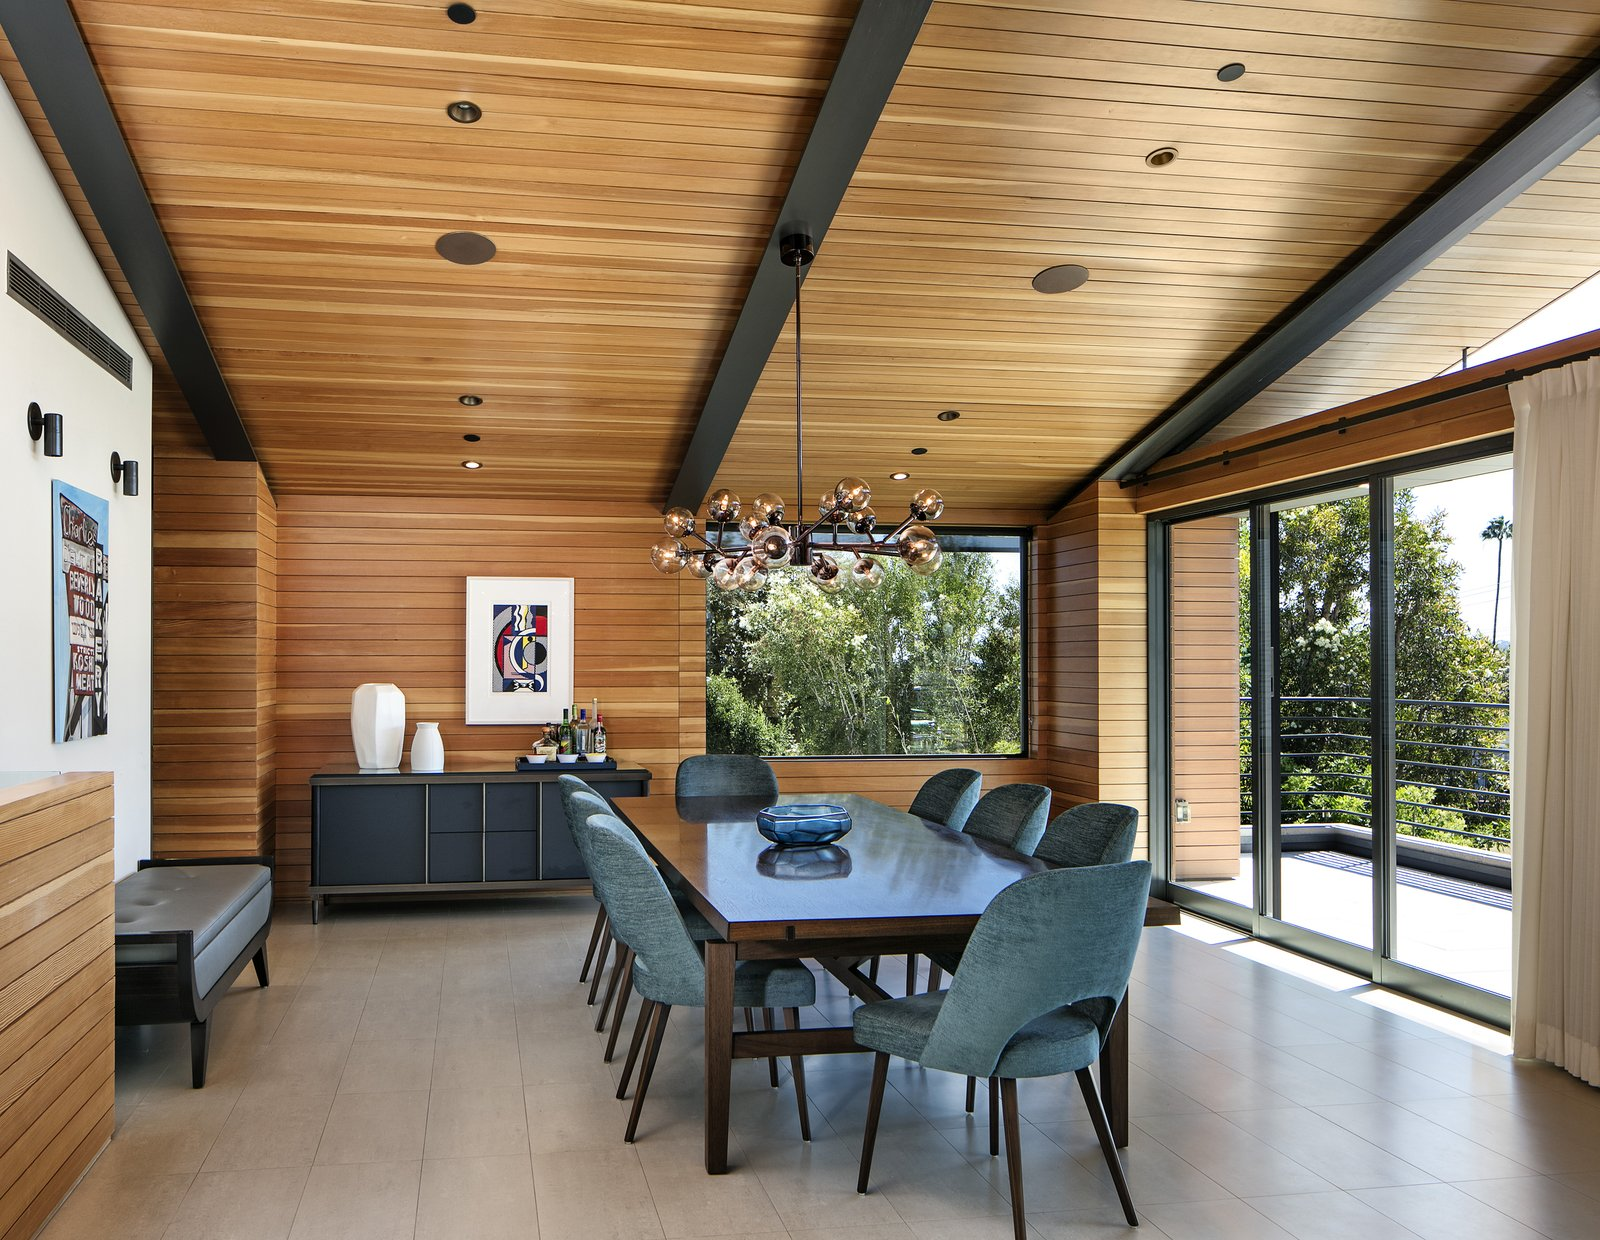 The formal dining area, also on the top level of the home, features Mid-Century furniture and lighting.   Tagged: Dining Room, Table, Chair, Pendant Lighting, Bench, and Storage.  Cohen Residence by Abramson Teiger Architects